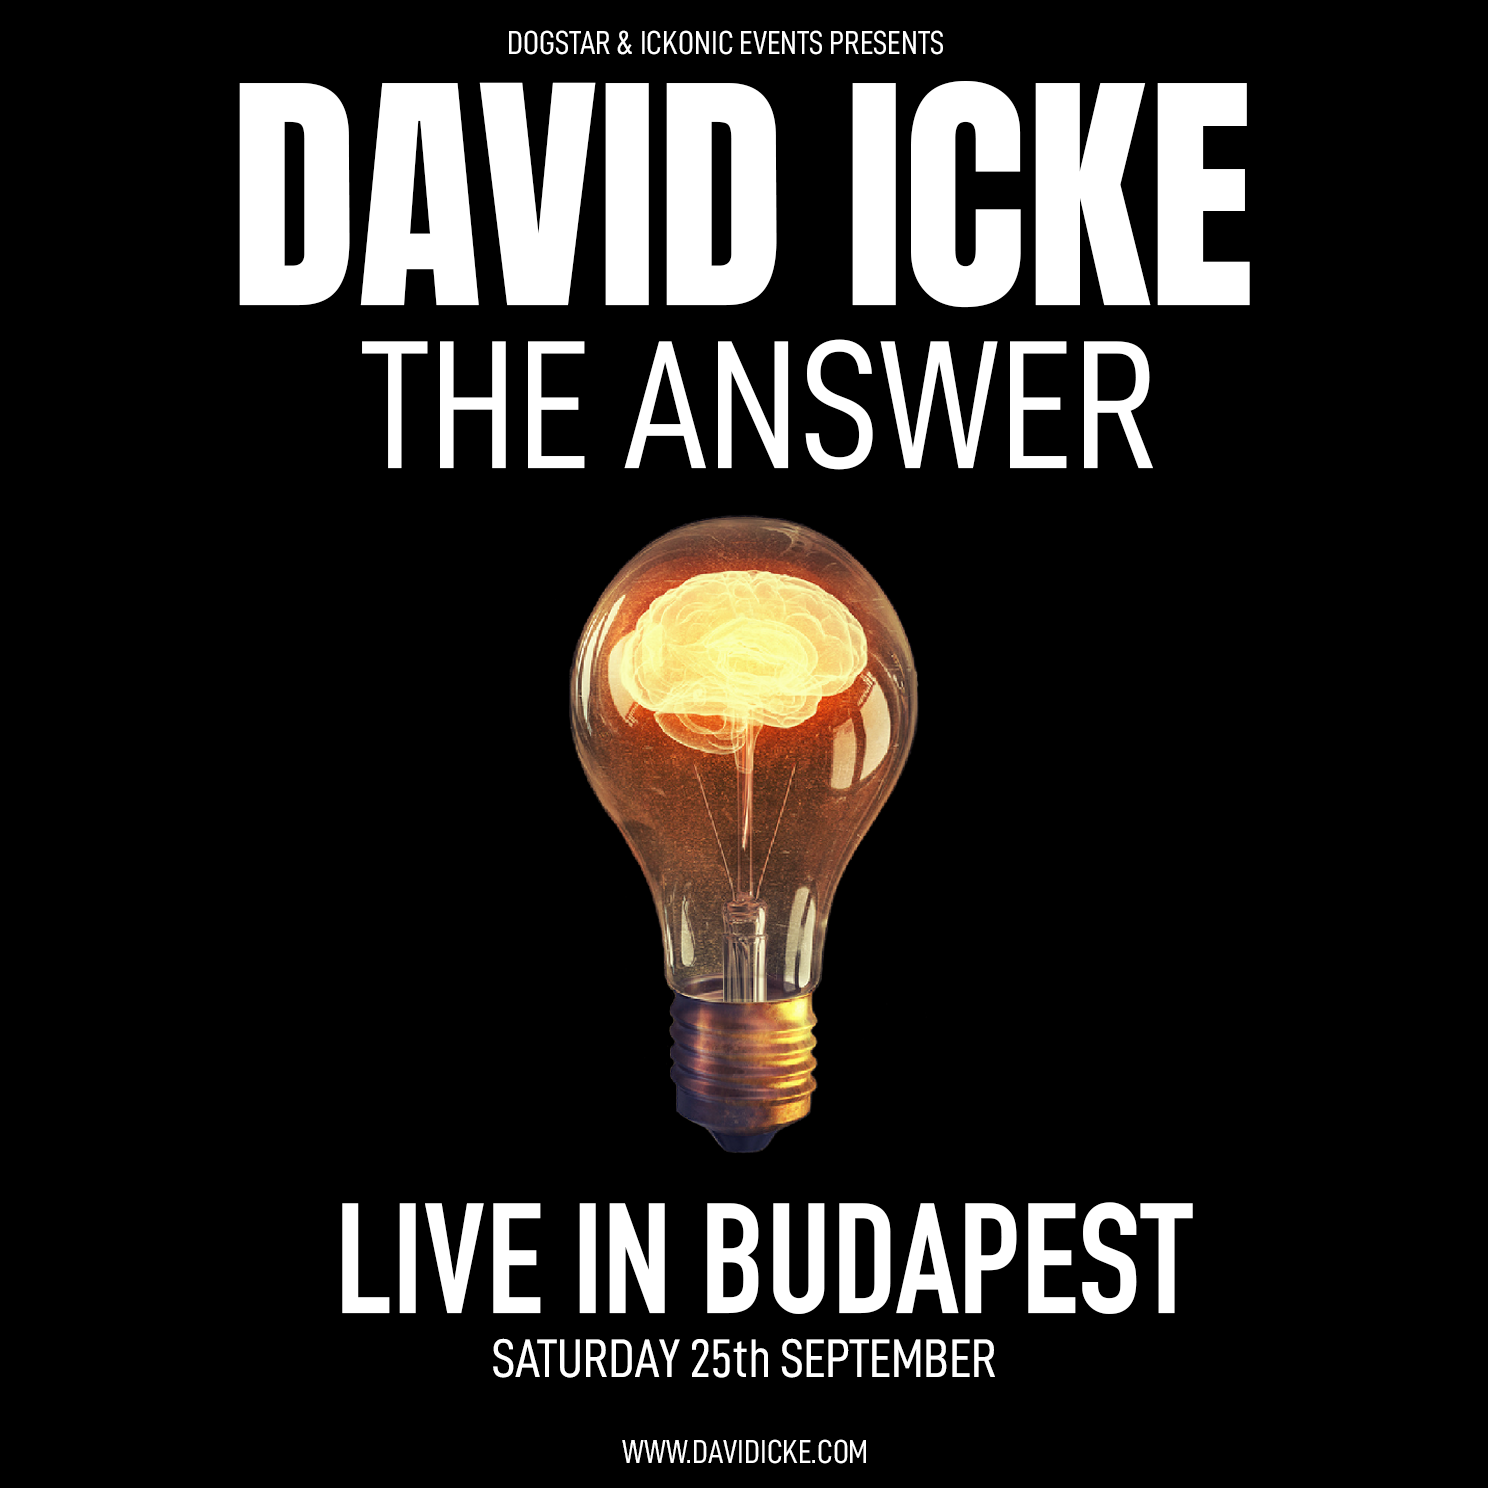 David Icke - Live In Budapest - The Answer - Saturday 25th September